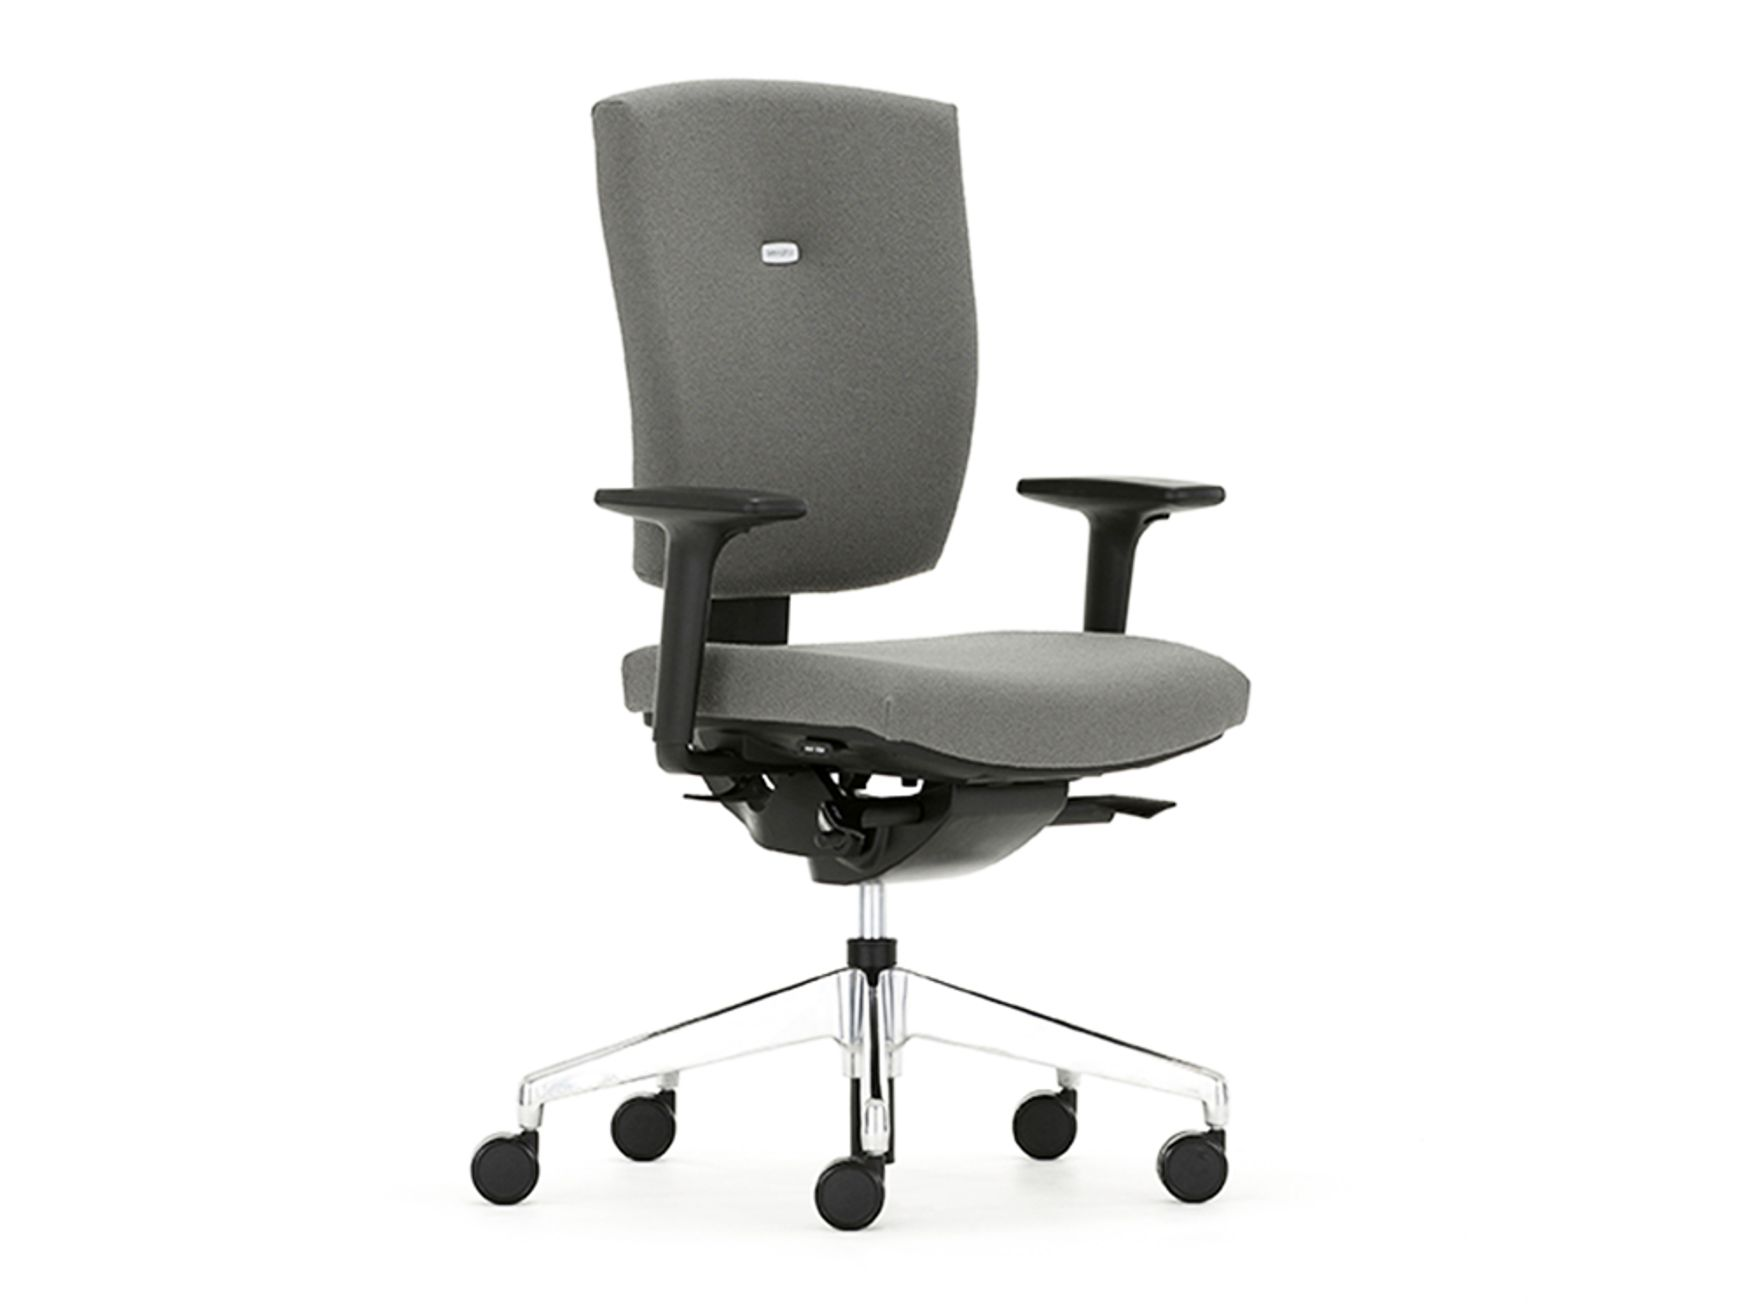 Used Senator Sprint Chairs - Choice of Fabric and Free Delivery!